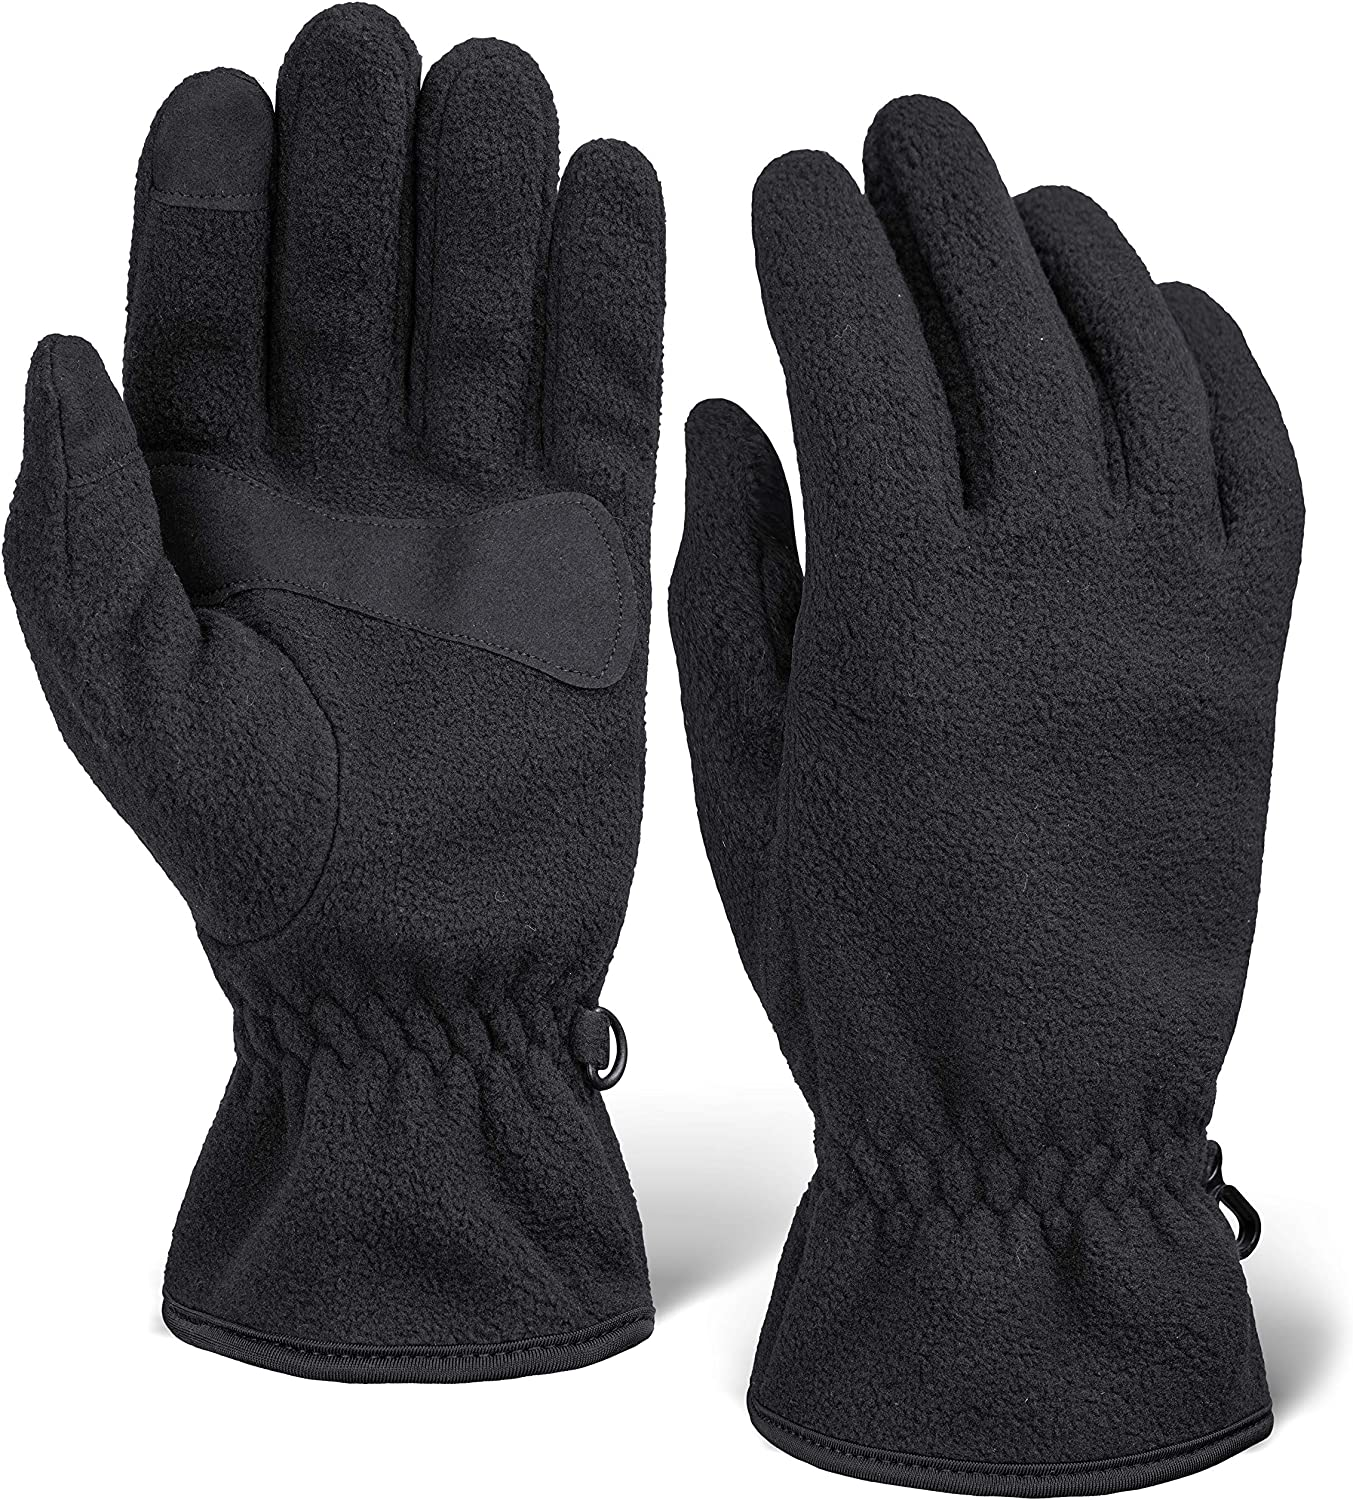 Winter Fleece Touchscreen Gloves for Men & Women - Warm & Soft Black Thermal Gloves for Cold Weather